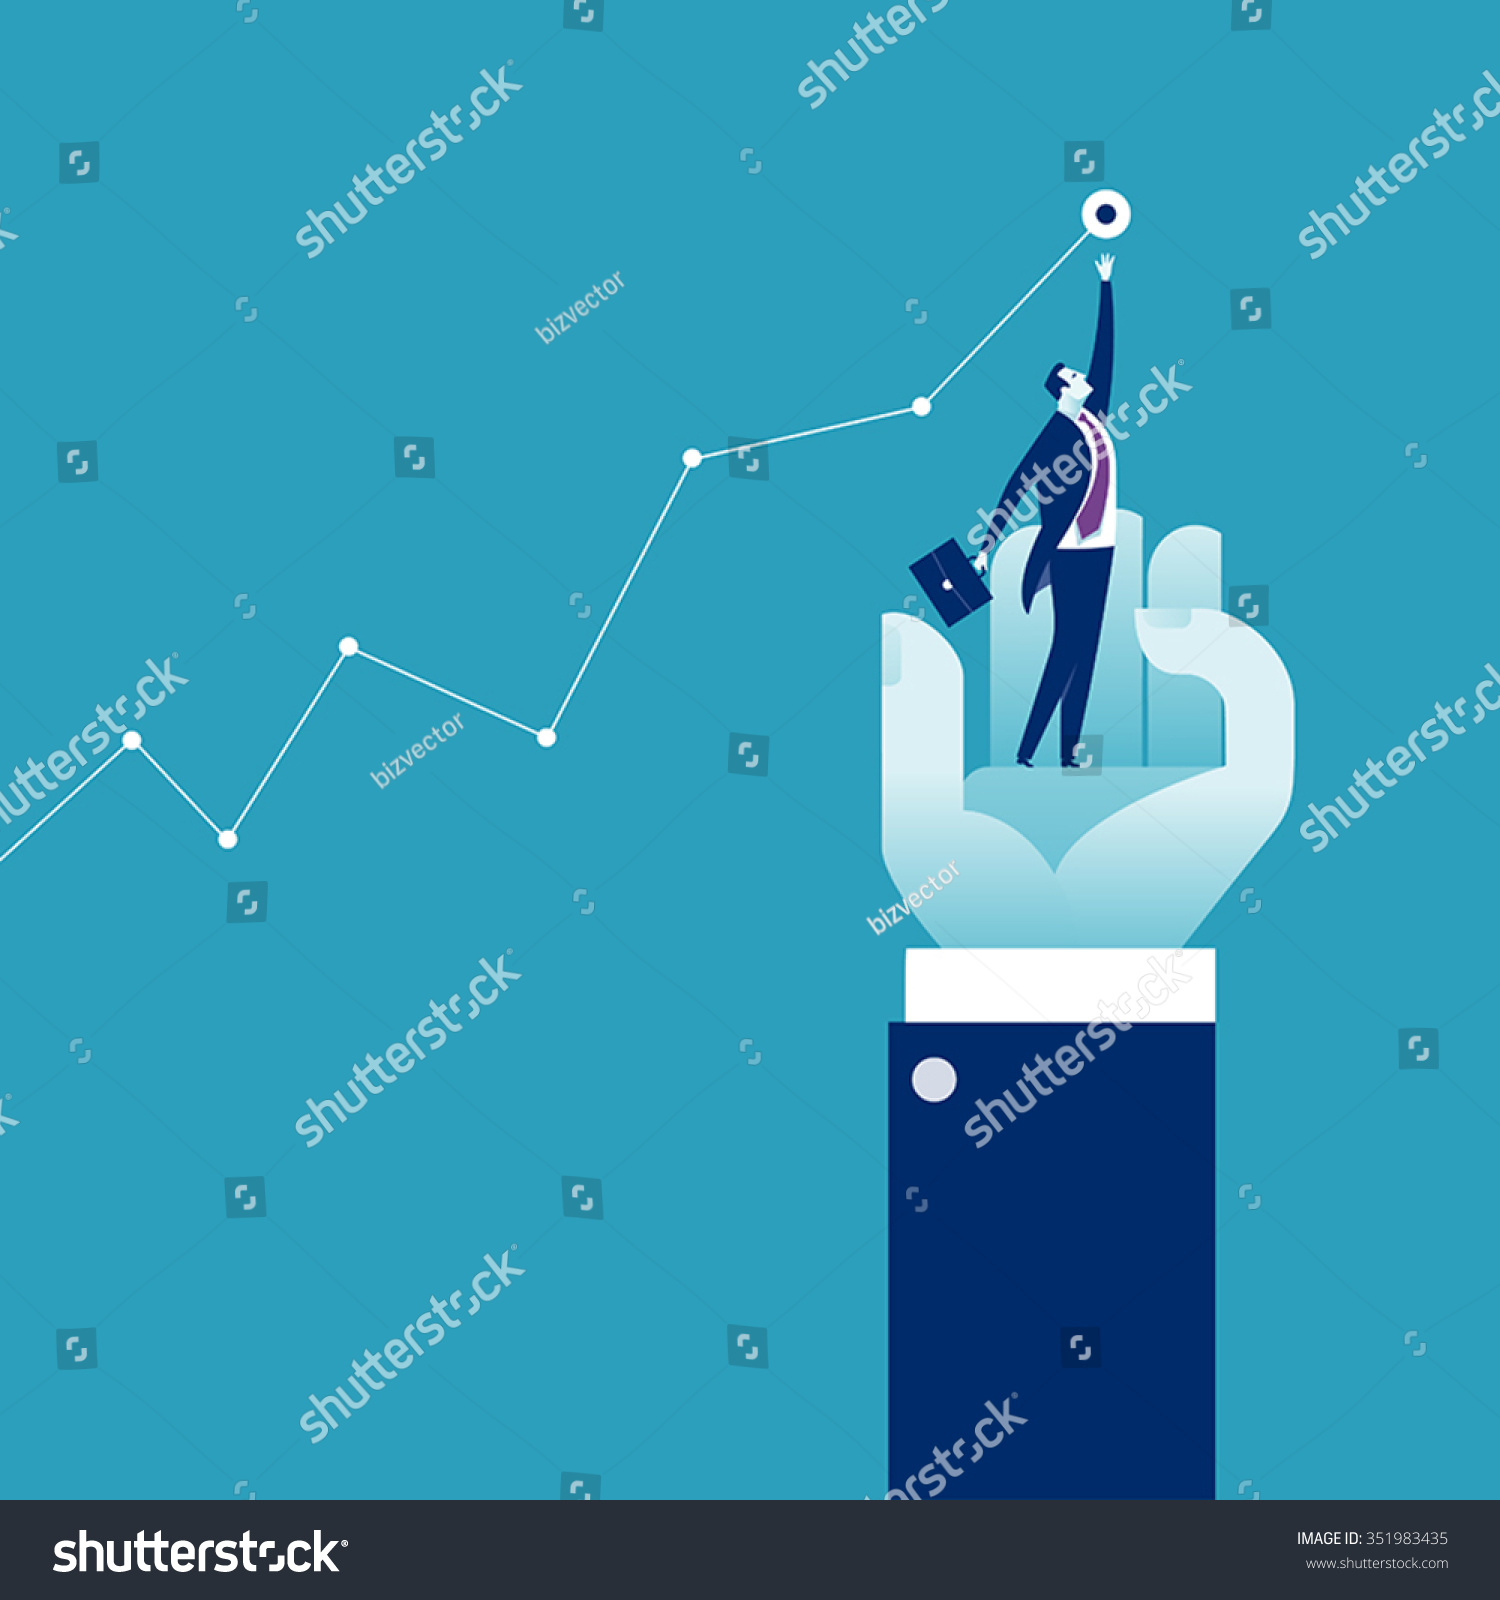 Helping Hand. Concept Business Illustration. - 351983435 ...